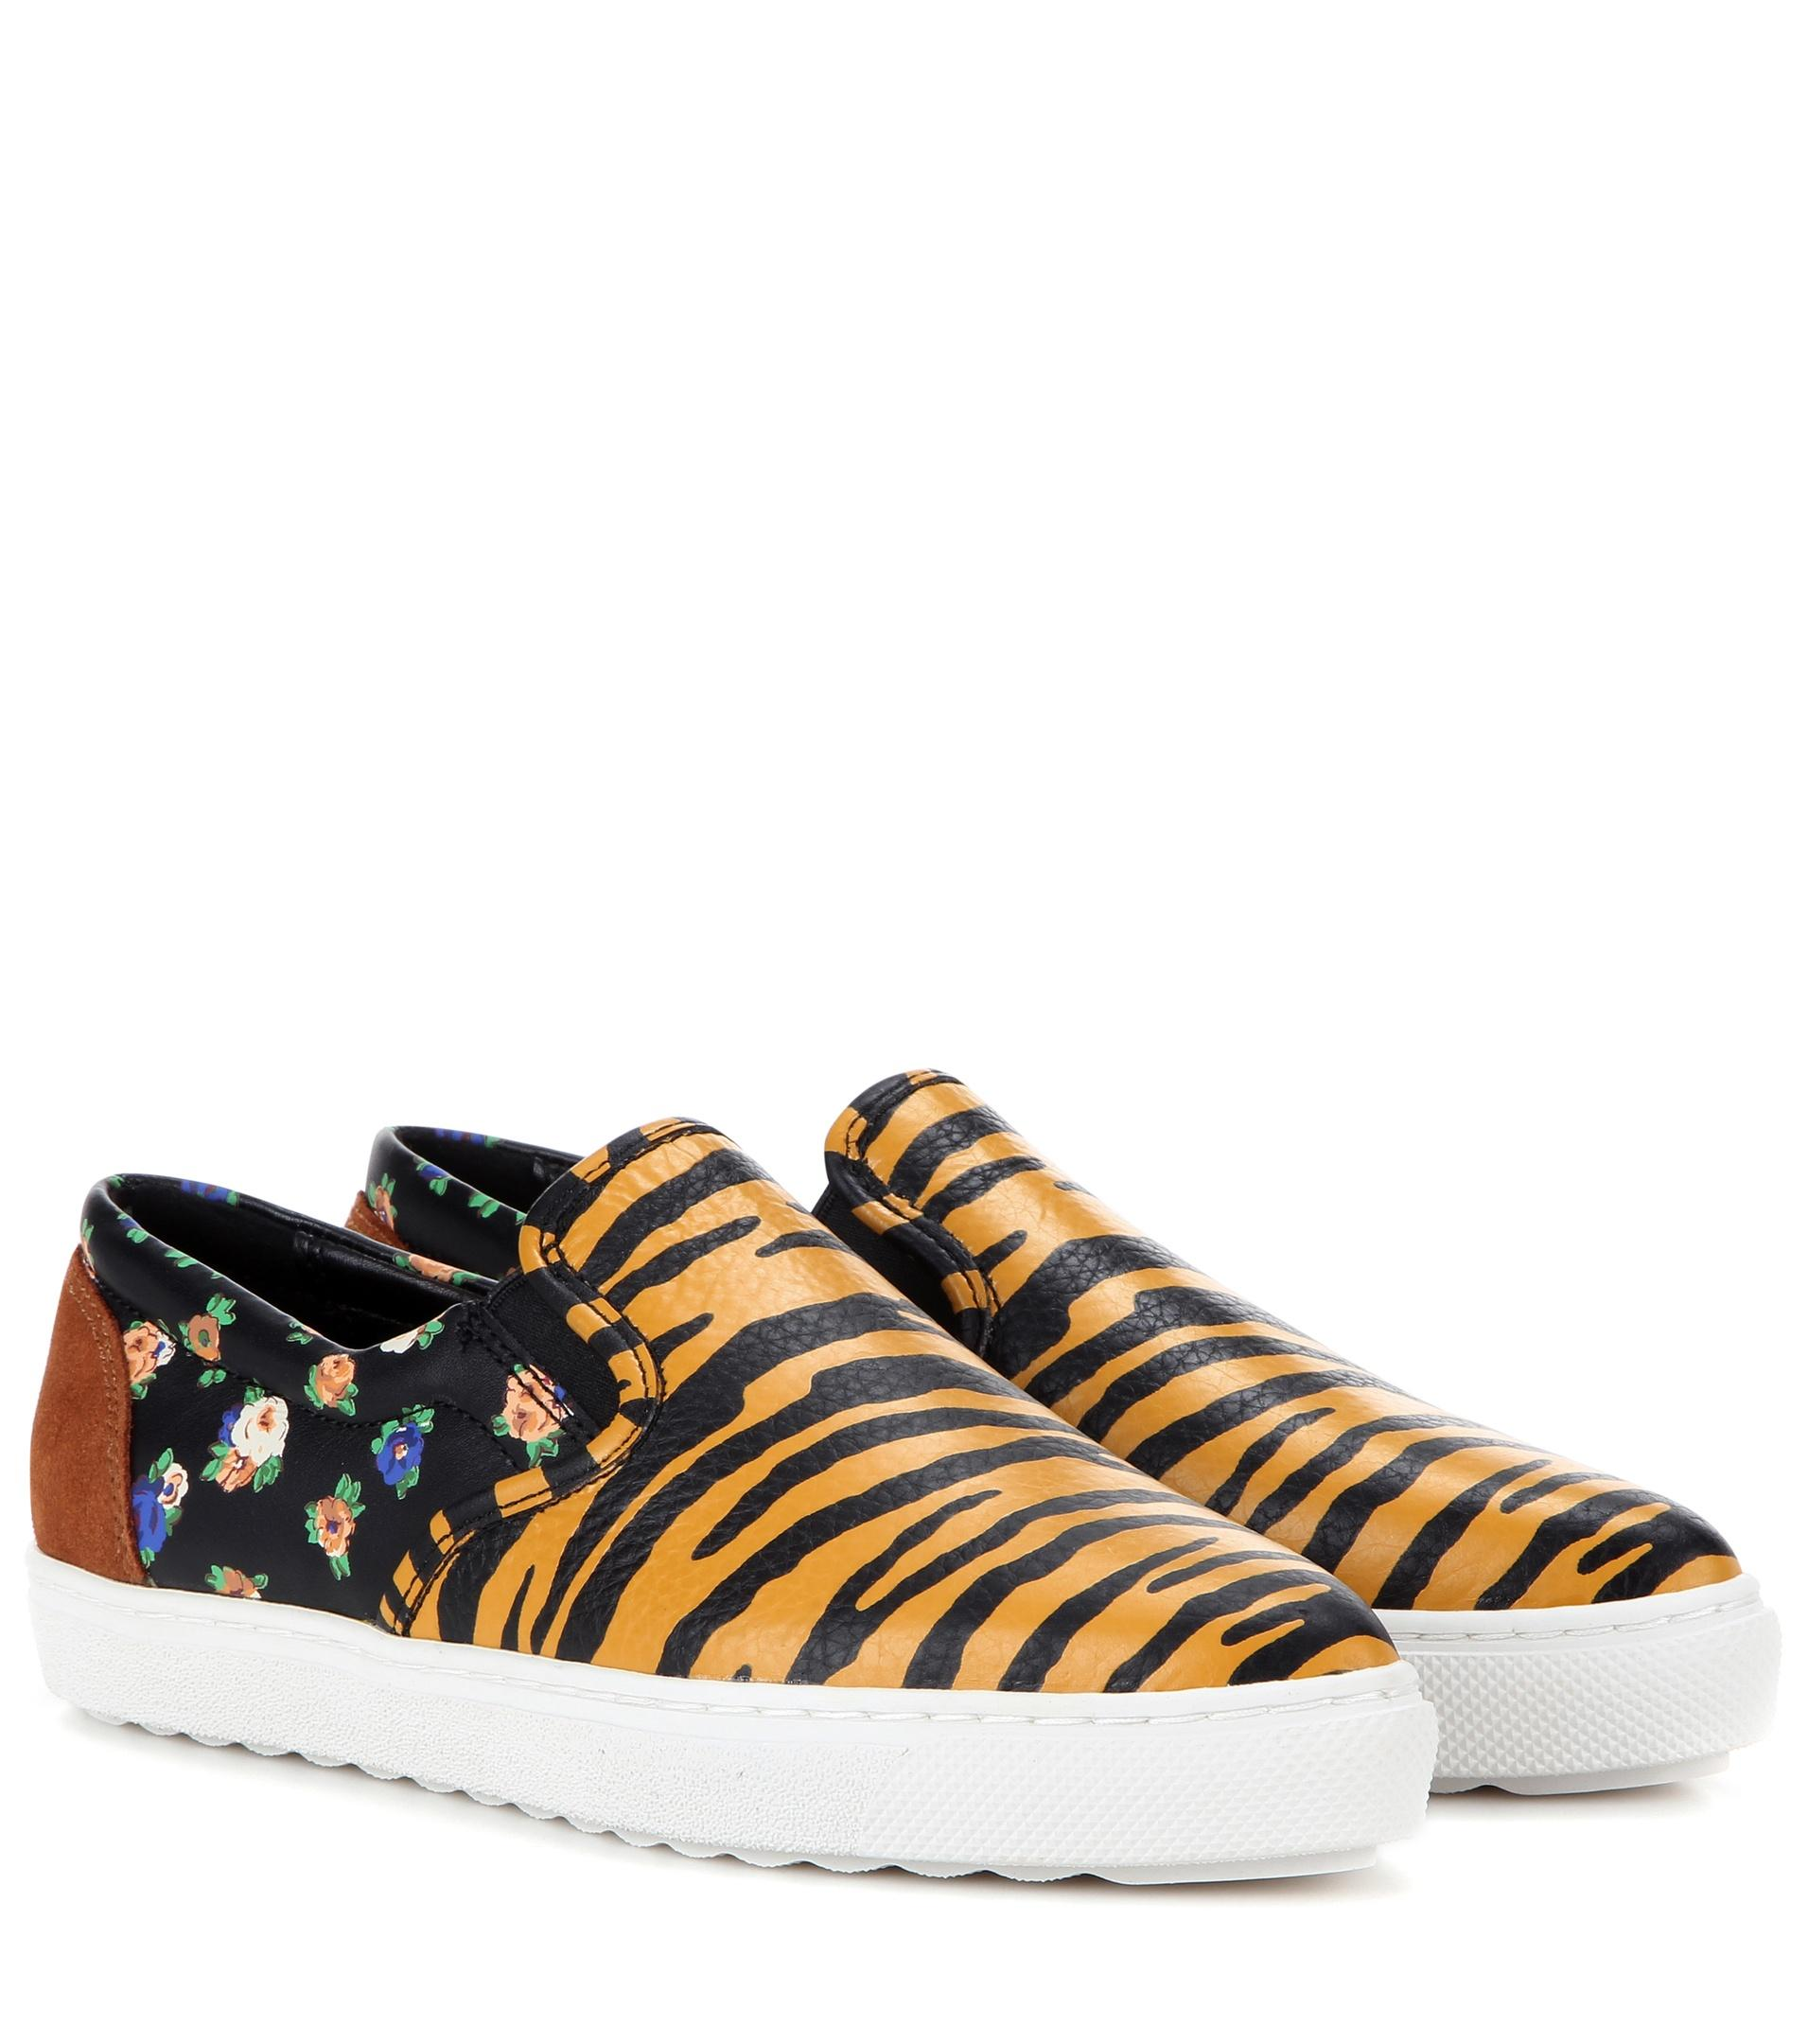 Coach Printed Leather Slip-on Sneakers